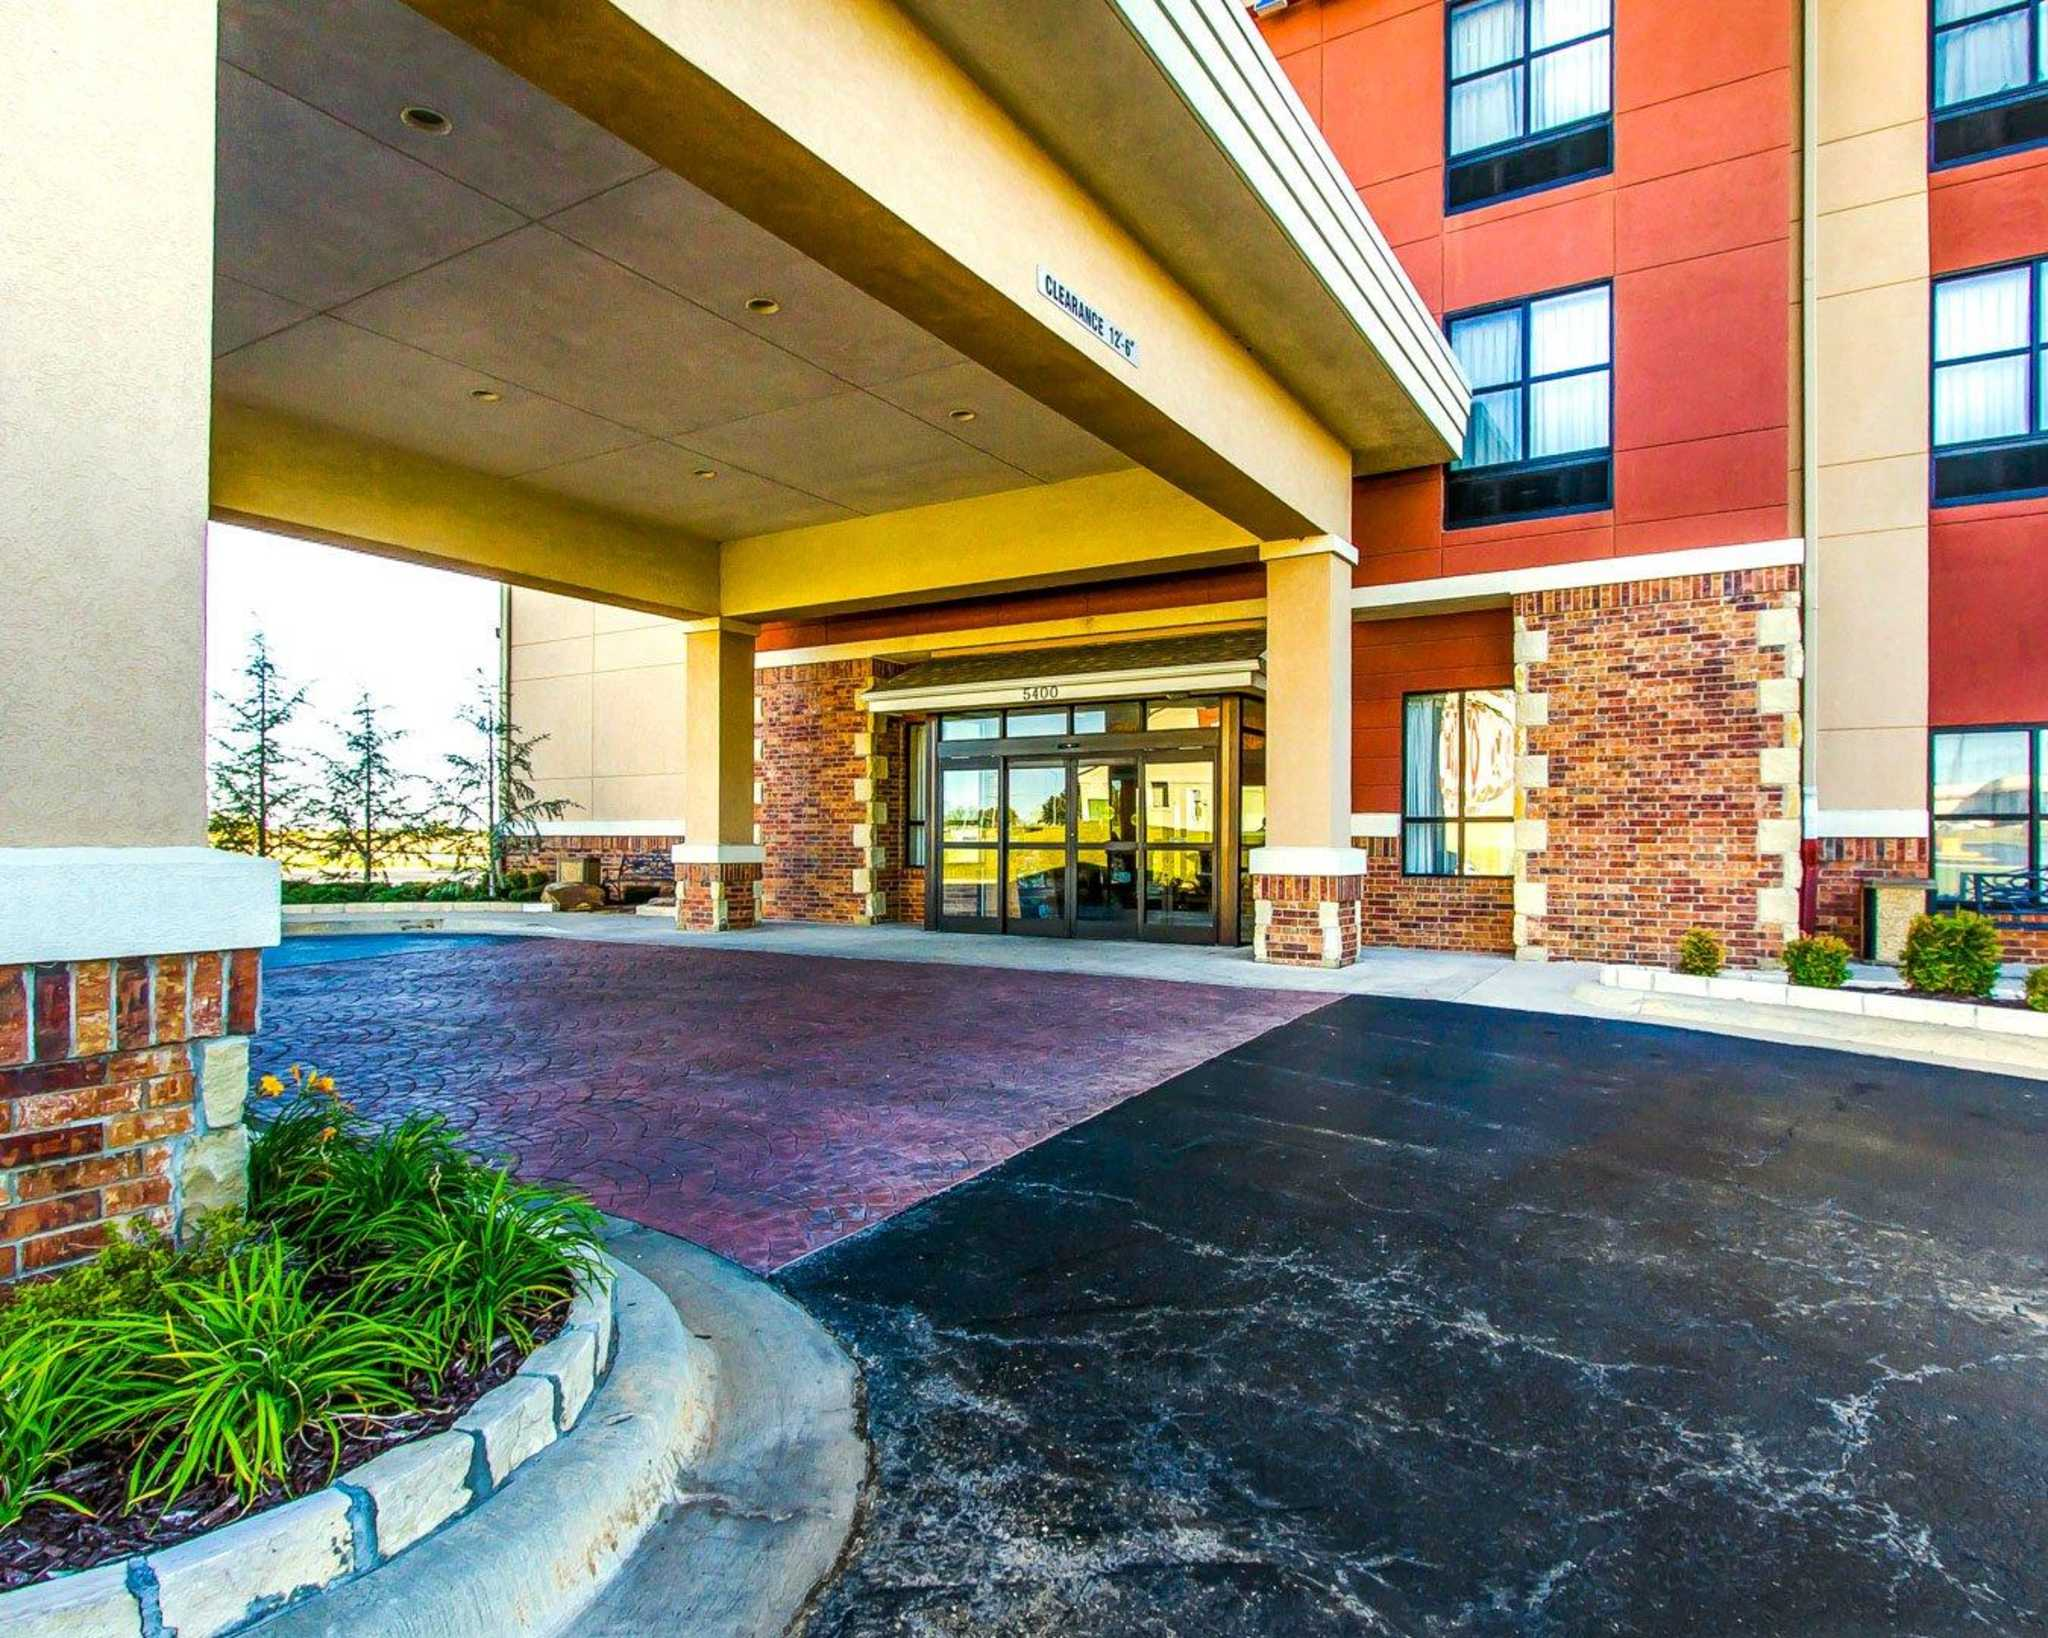 Choice Corporate code 25% off. Thread Tools Search this Thread Jun 19, 14, pm #1 Doc Savage and Utah, SOS codes are bringing up nothing other than Rodeway Inn and/or EconoLodge. Further east some Comfort and/or Quality and/or other brand properties are coming up in some locations.